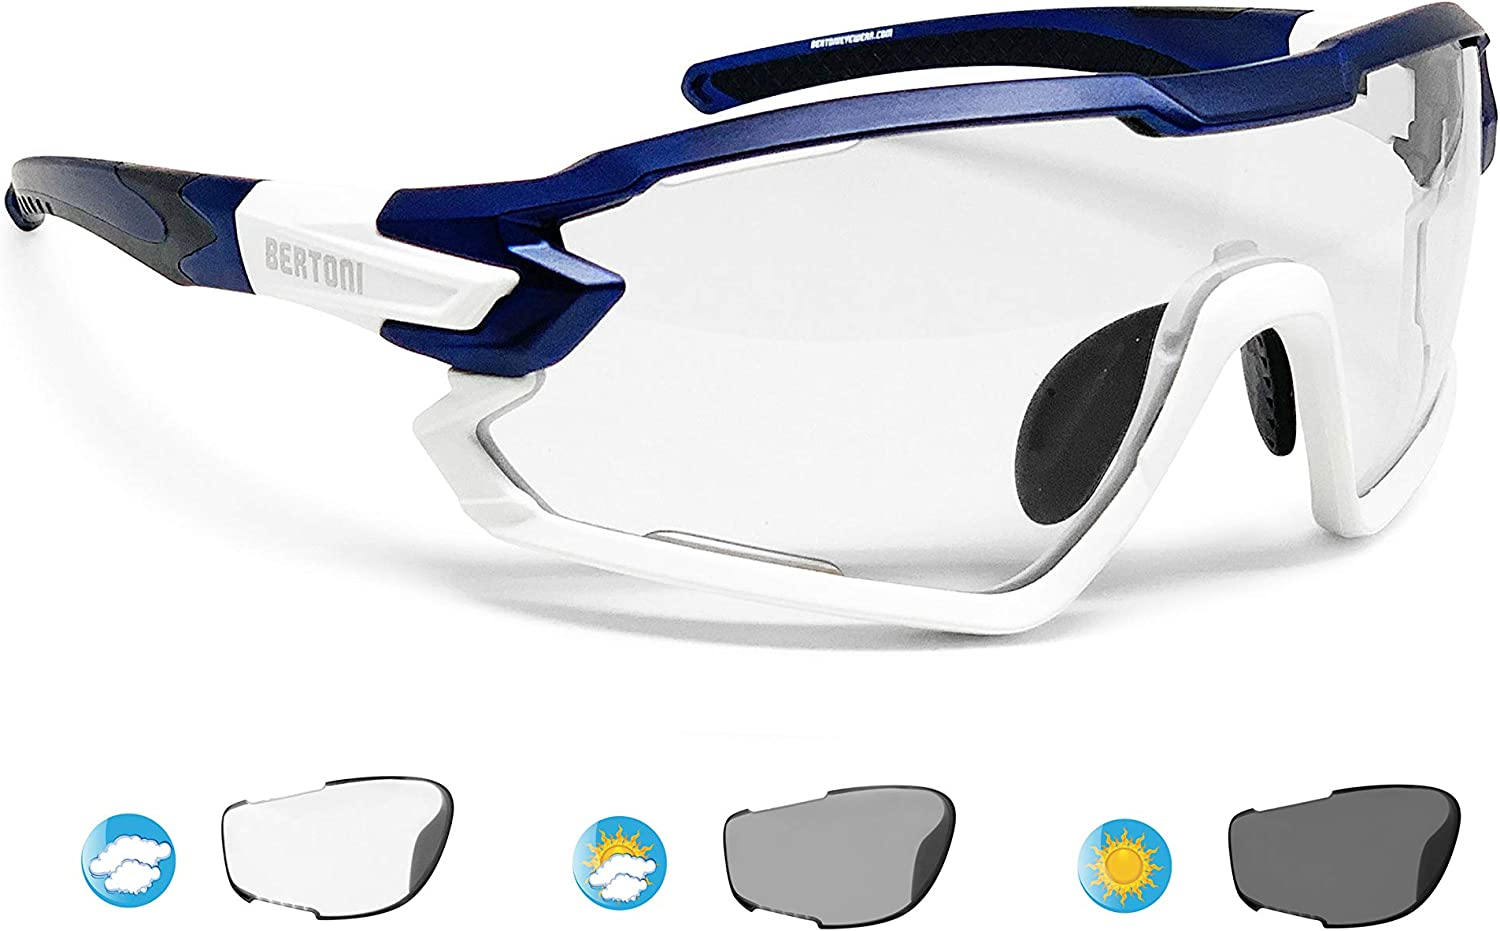 Bertoni Sport Sunglasses Polarized Photochromic Cycling MTB Running Ski Golf Removable Sport Prescription Carrier Included mod. Quasar